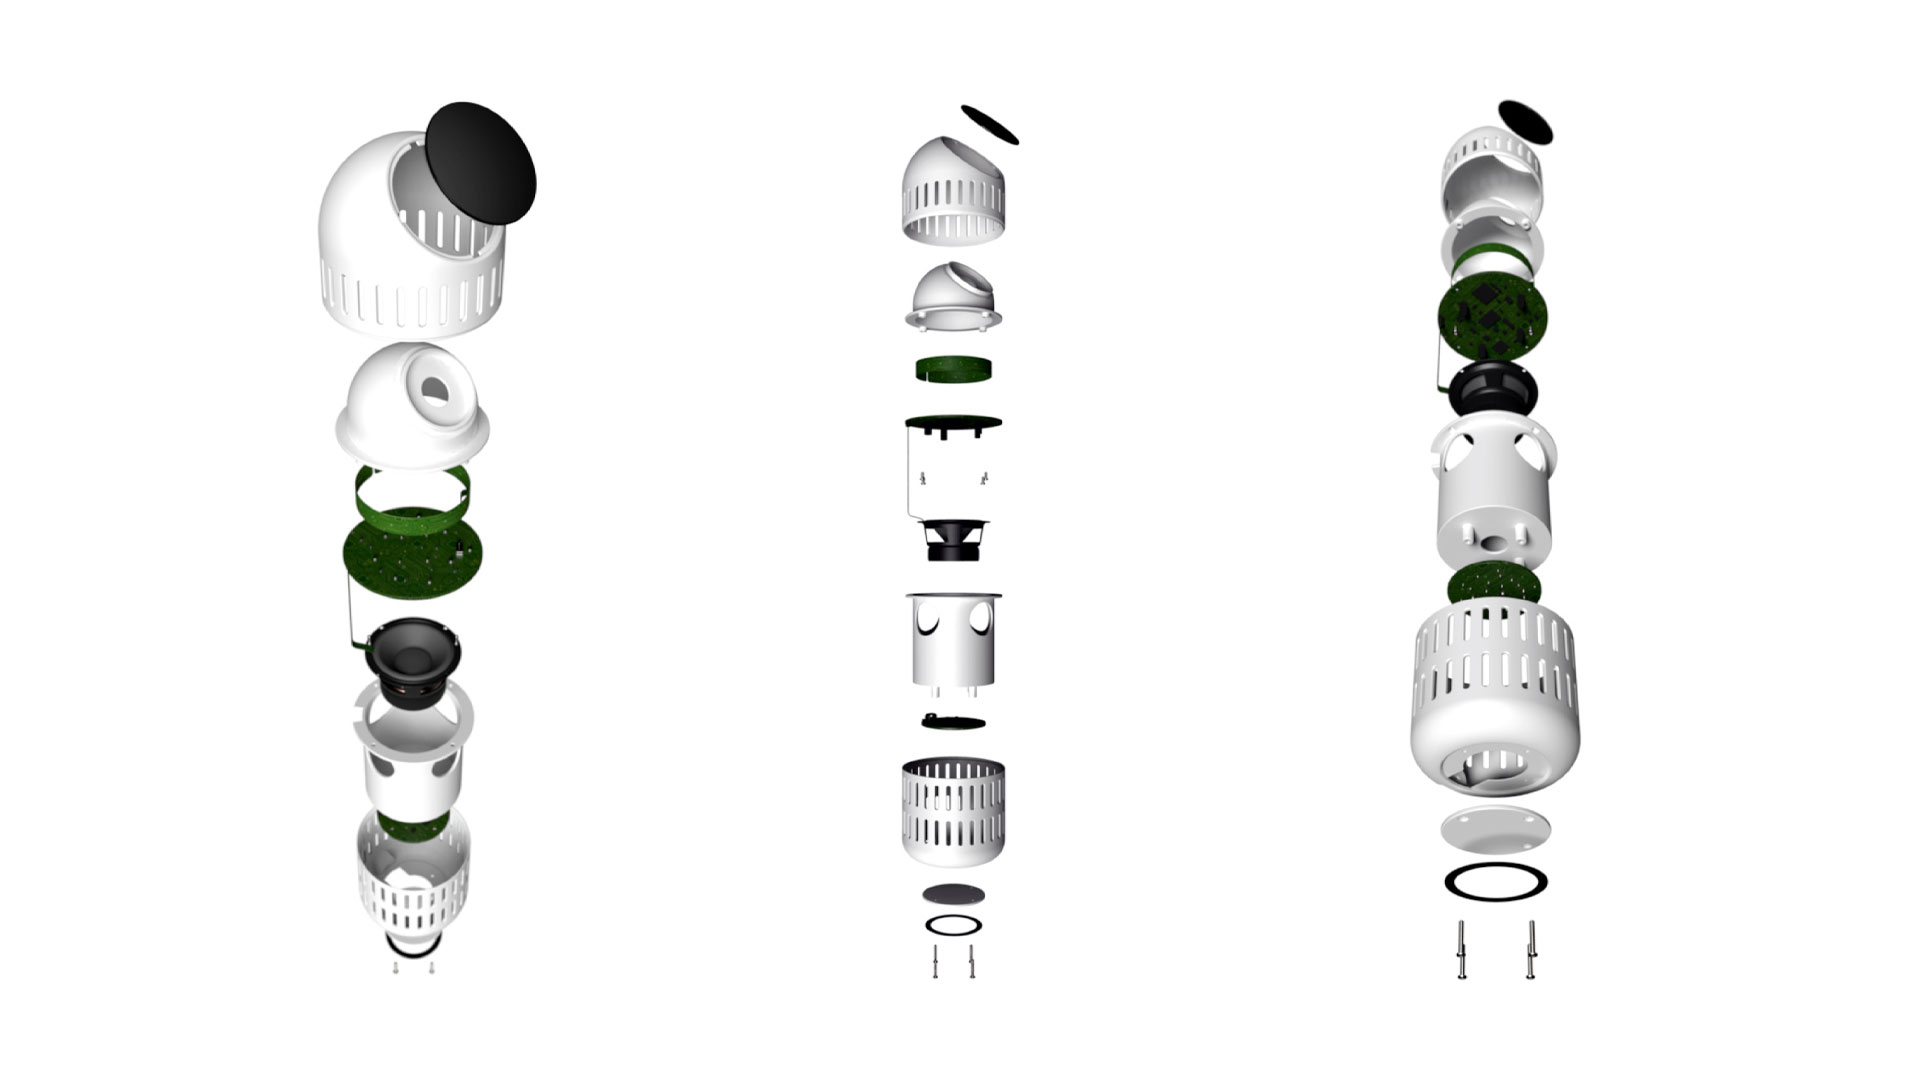 Gloo CAD exploded view